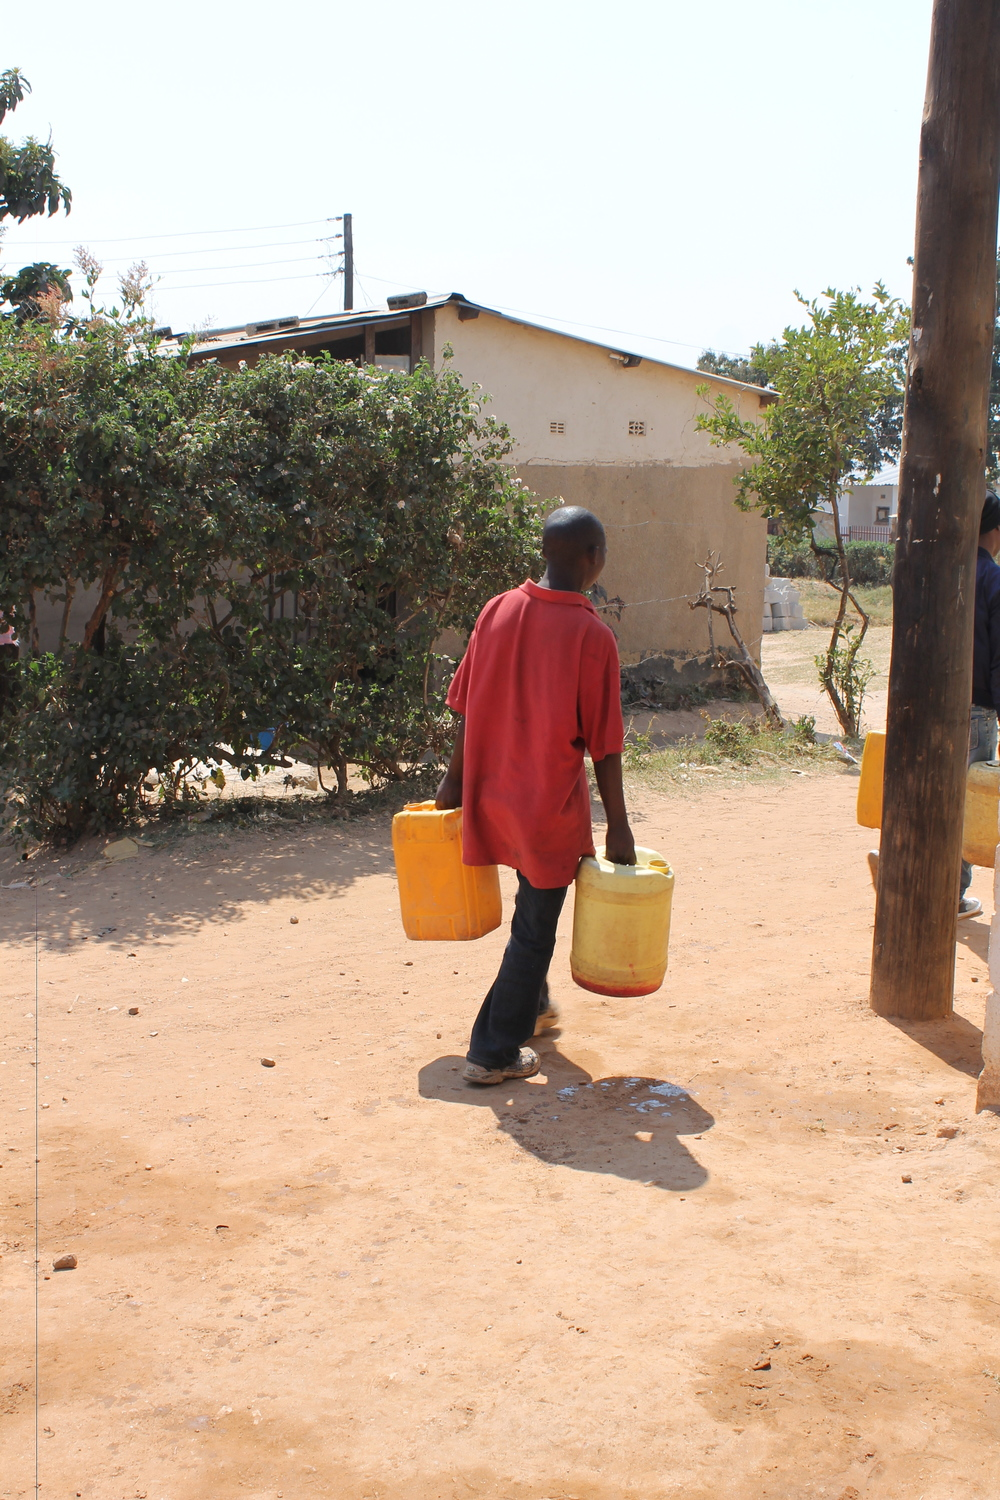 These water jugs mean life for households without running water. We love watching individuals walk away with full buckets, knowing the difference that water will make for entire families.